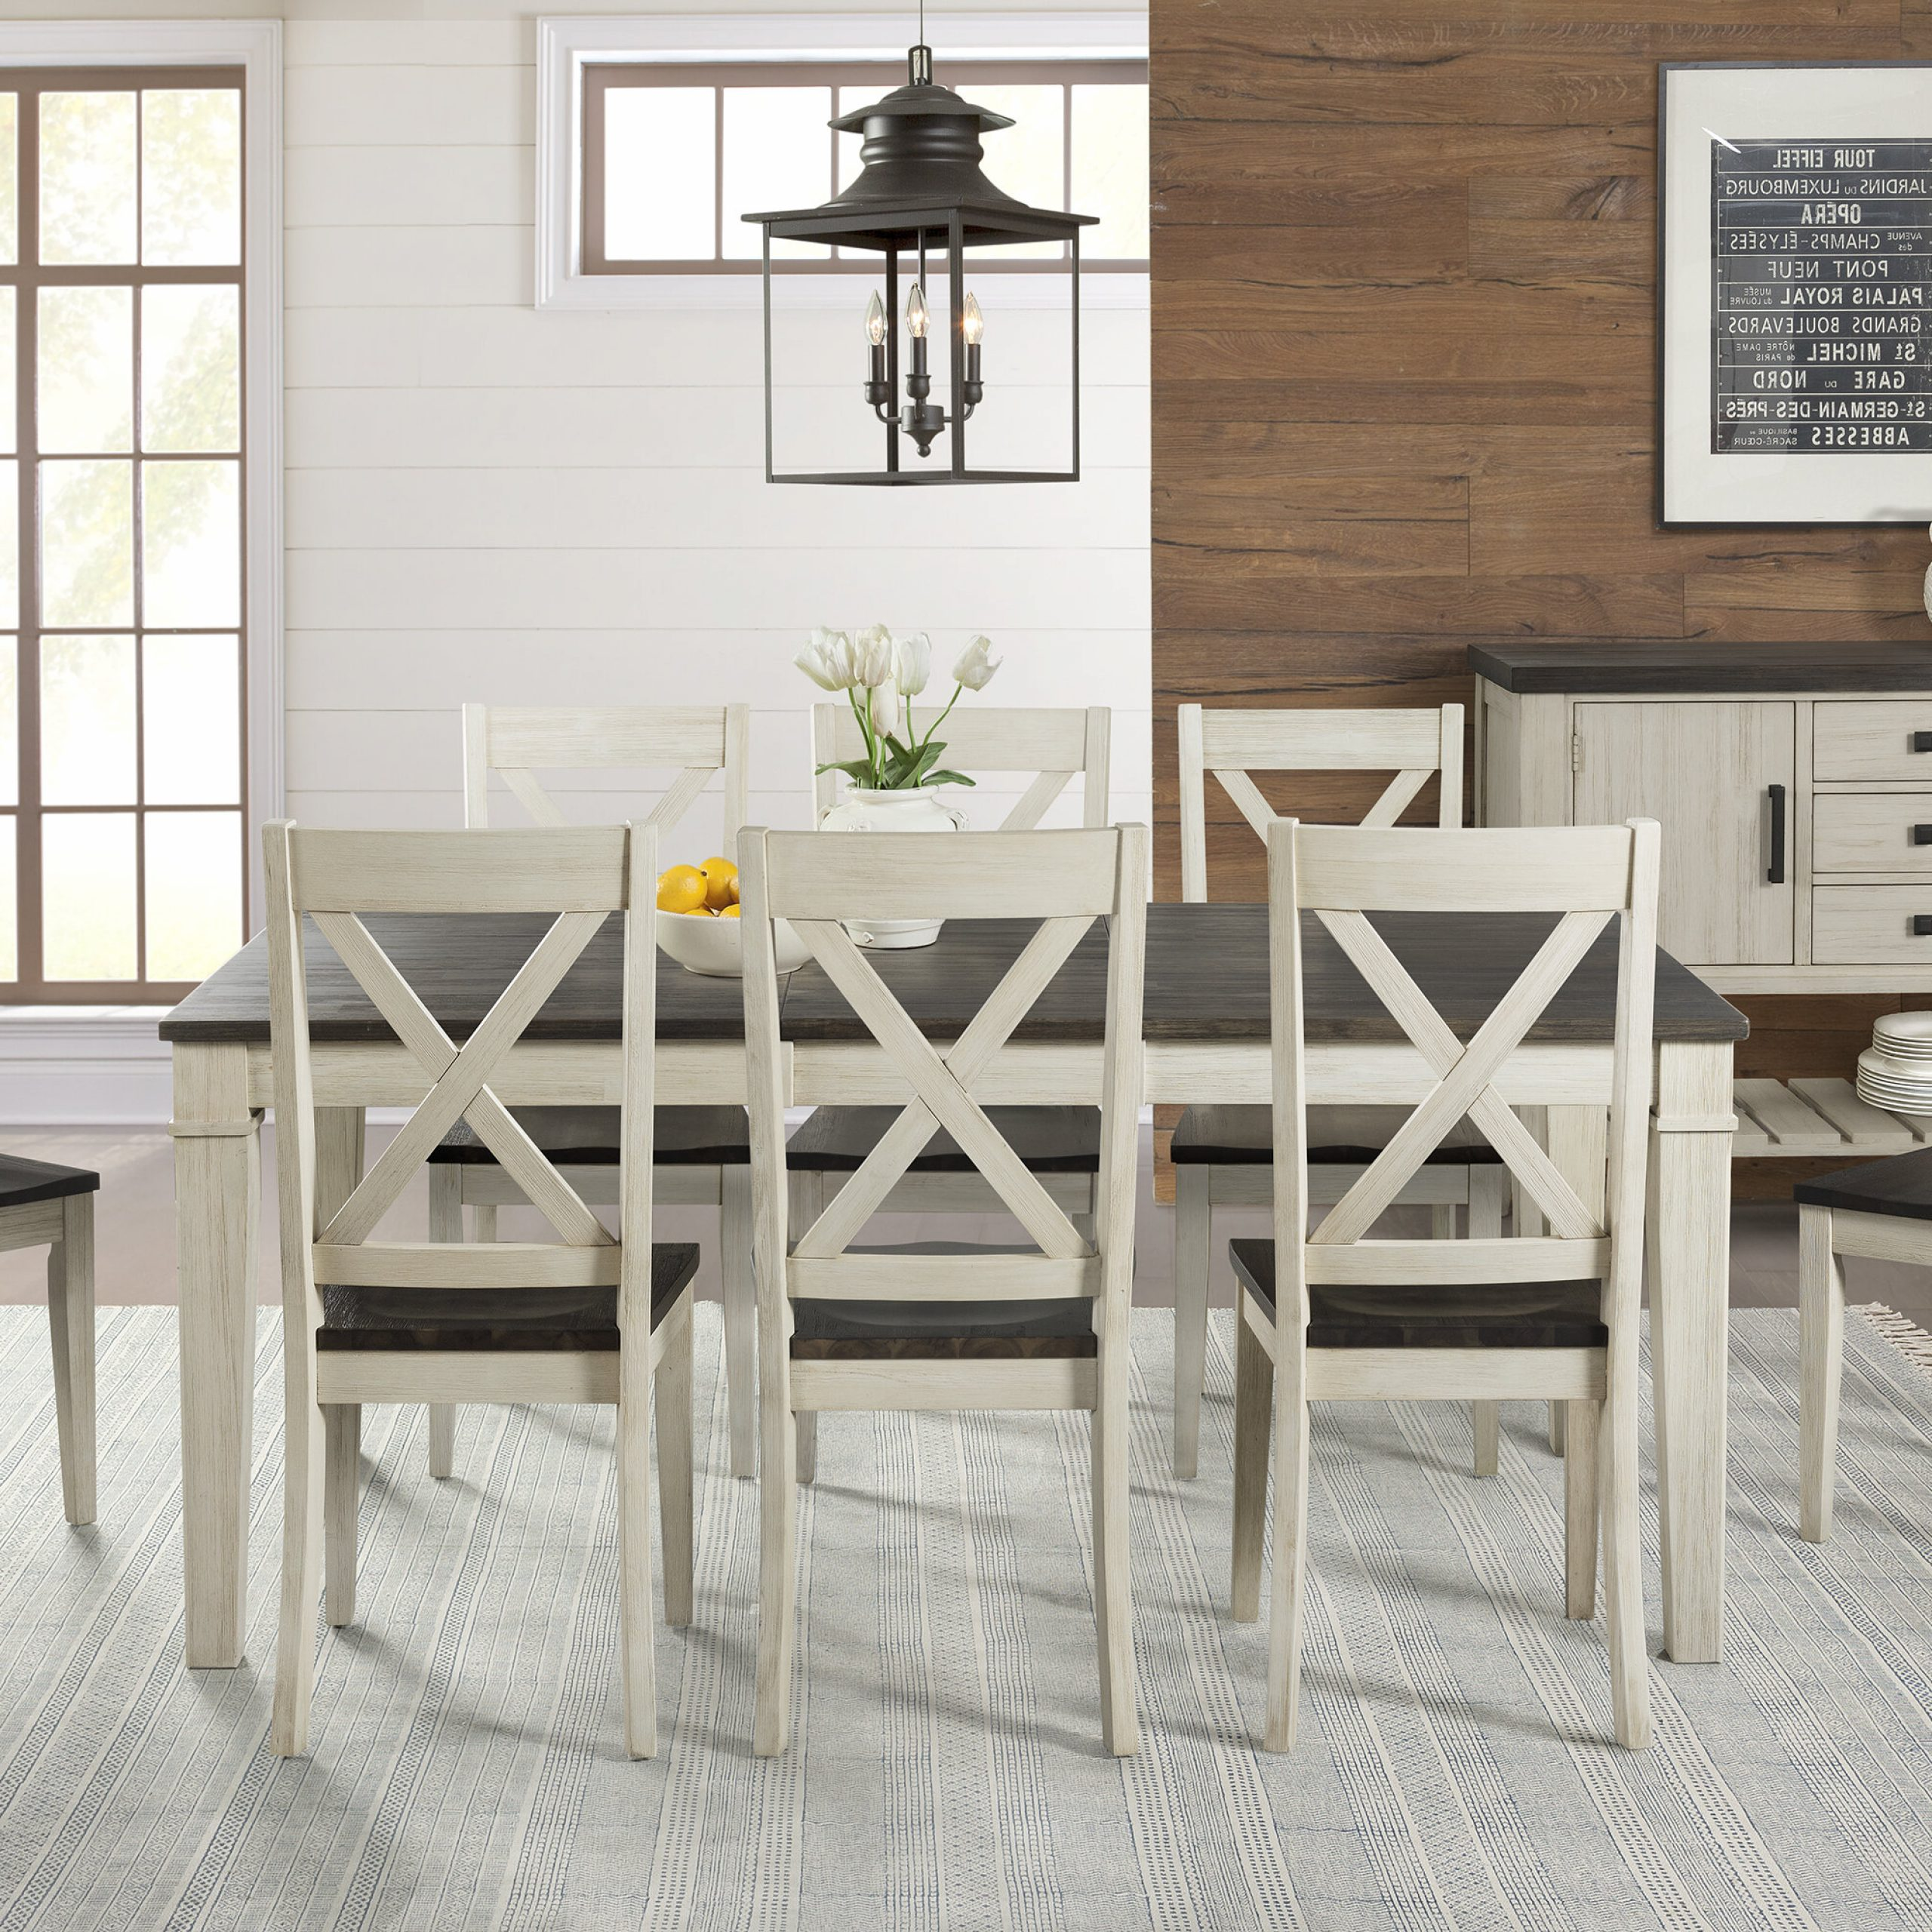 Ridgley 9 Piece Extendable Solid Wood Dining Set with Best and Newest Hewn Oak Lorraine Extending Dining Tables